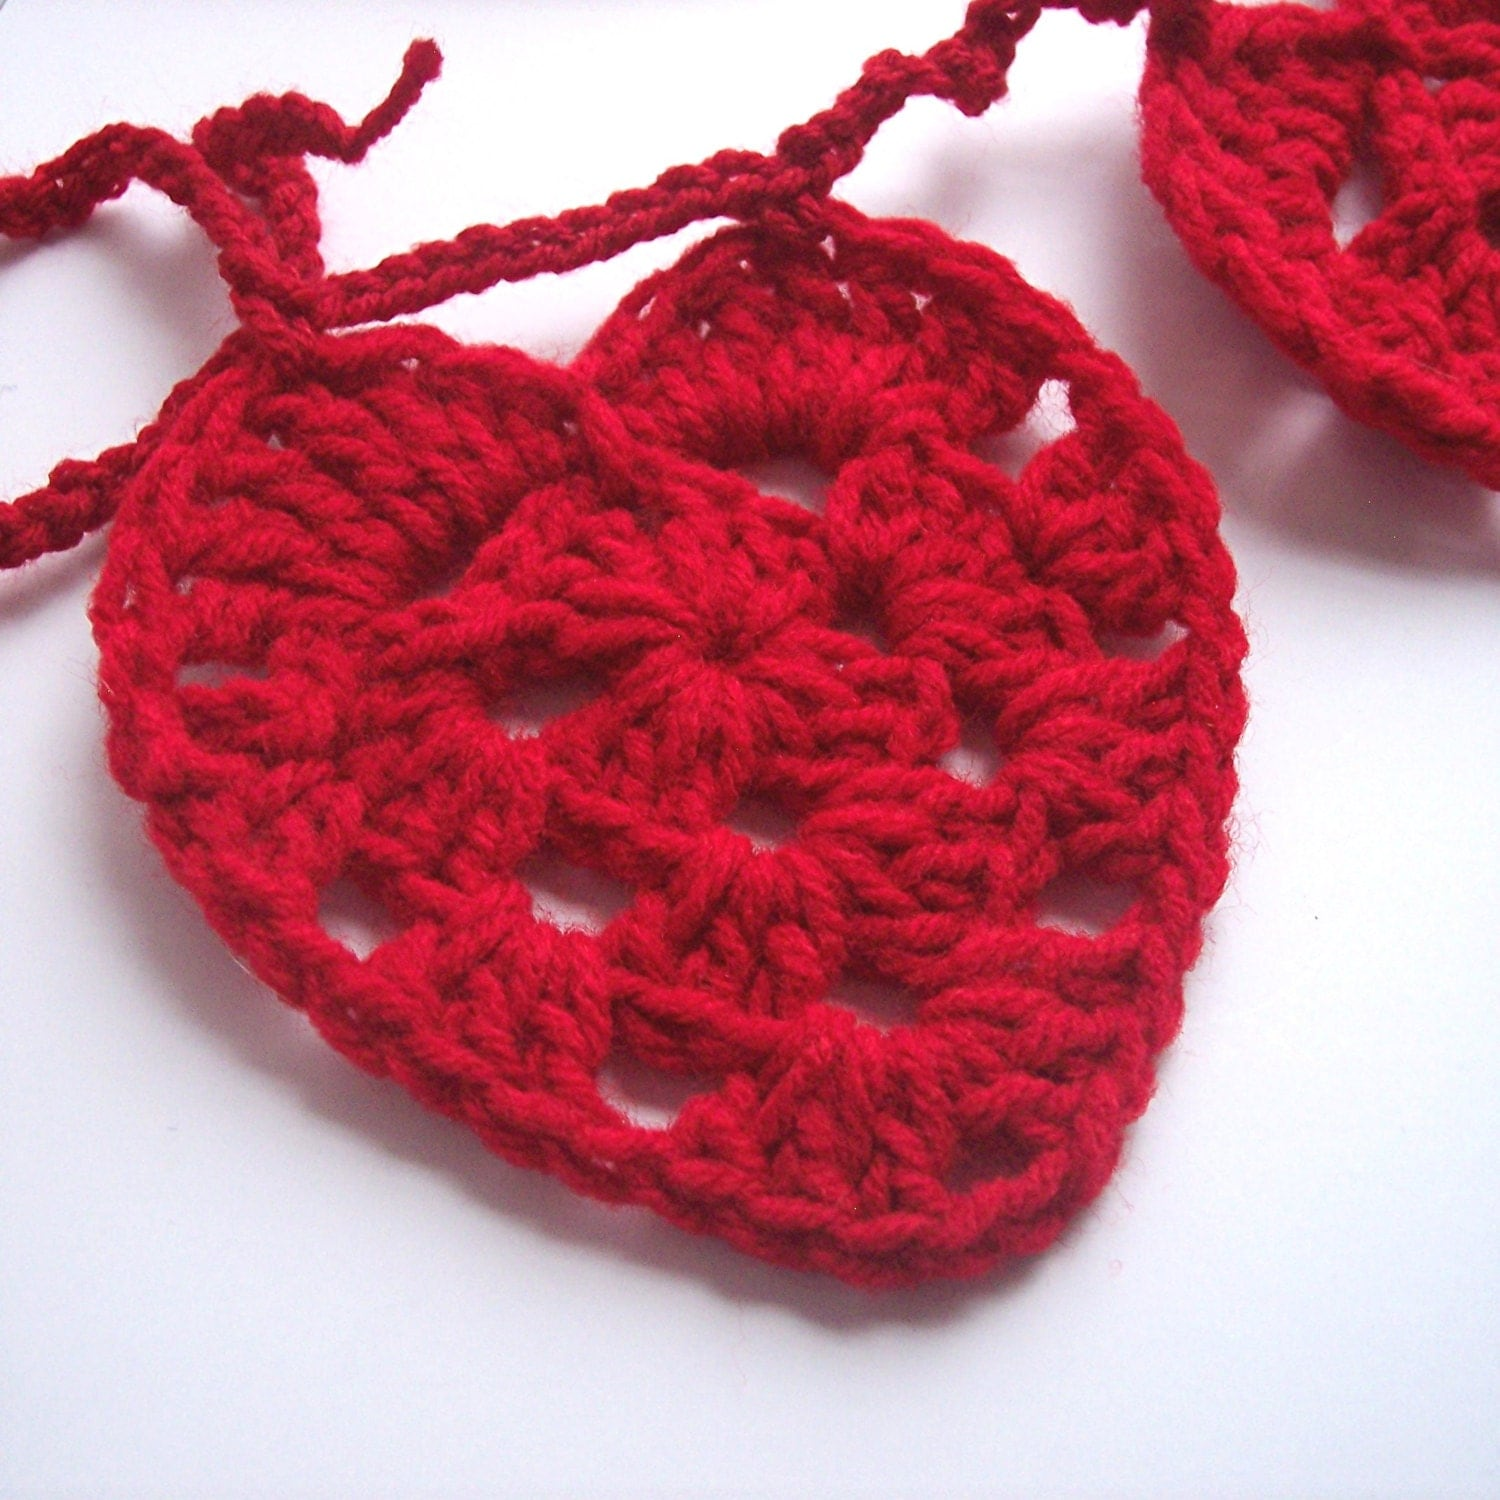 Heart Garland - Crochet Valentine Heart Garland Bunting Valentine's Day Red Hearts Crochet Garland - Ready to Ship - ThePrairieCottage